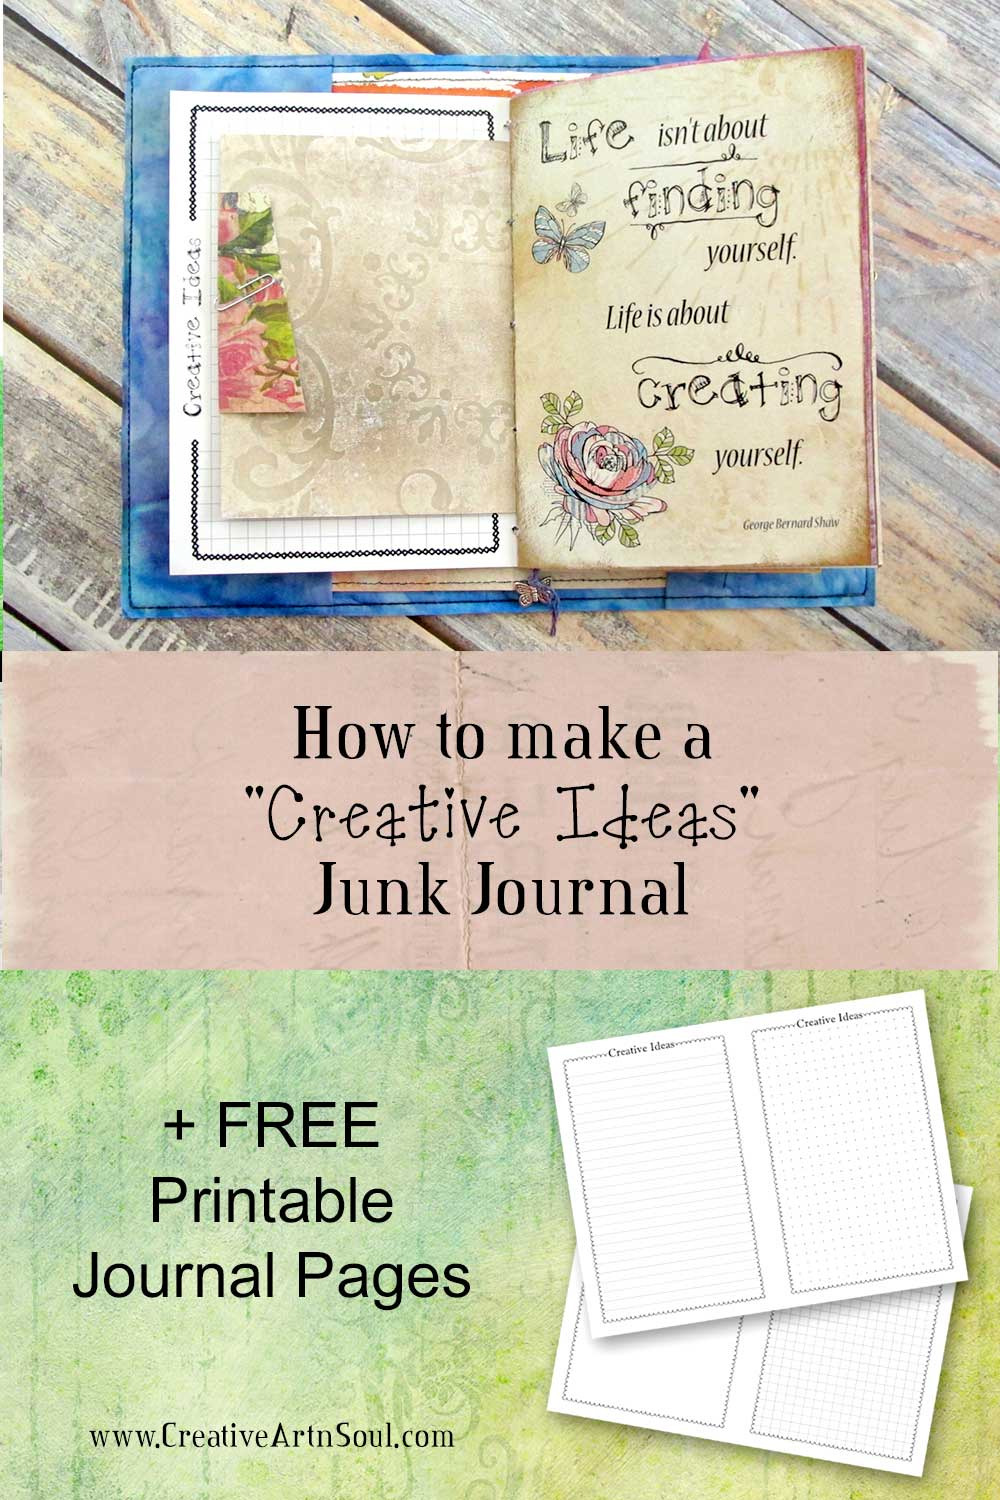 How to Make a Creative Ideas Junk Journal + Free Printable Pages